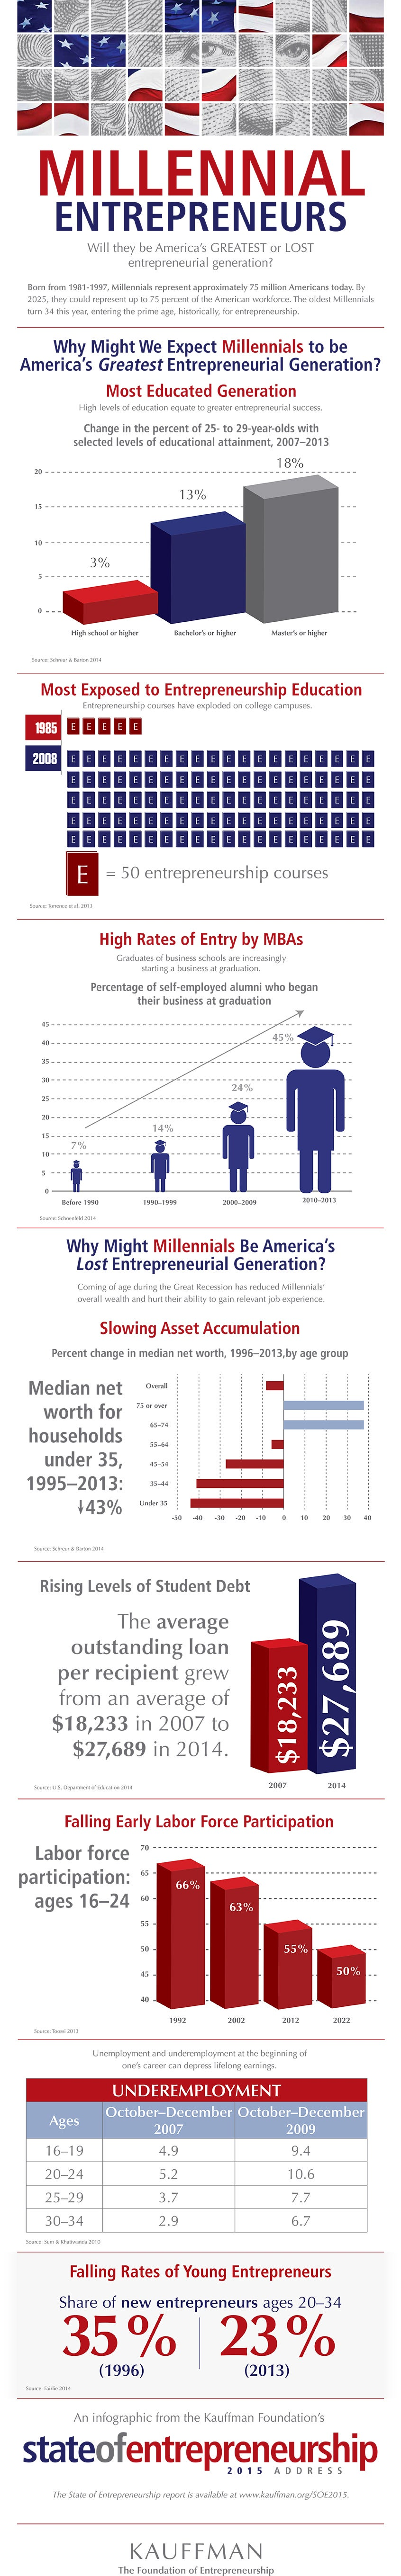 The Case For and Against Millennials as the Greatest Entrepreneurial Generation (Infographic)